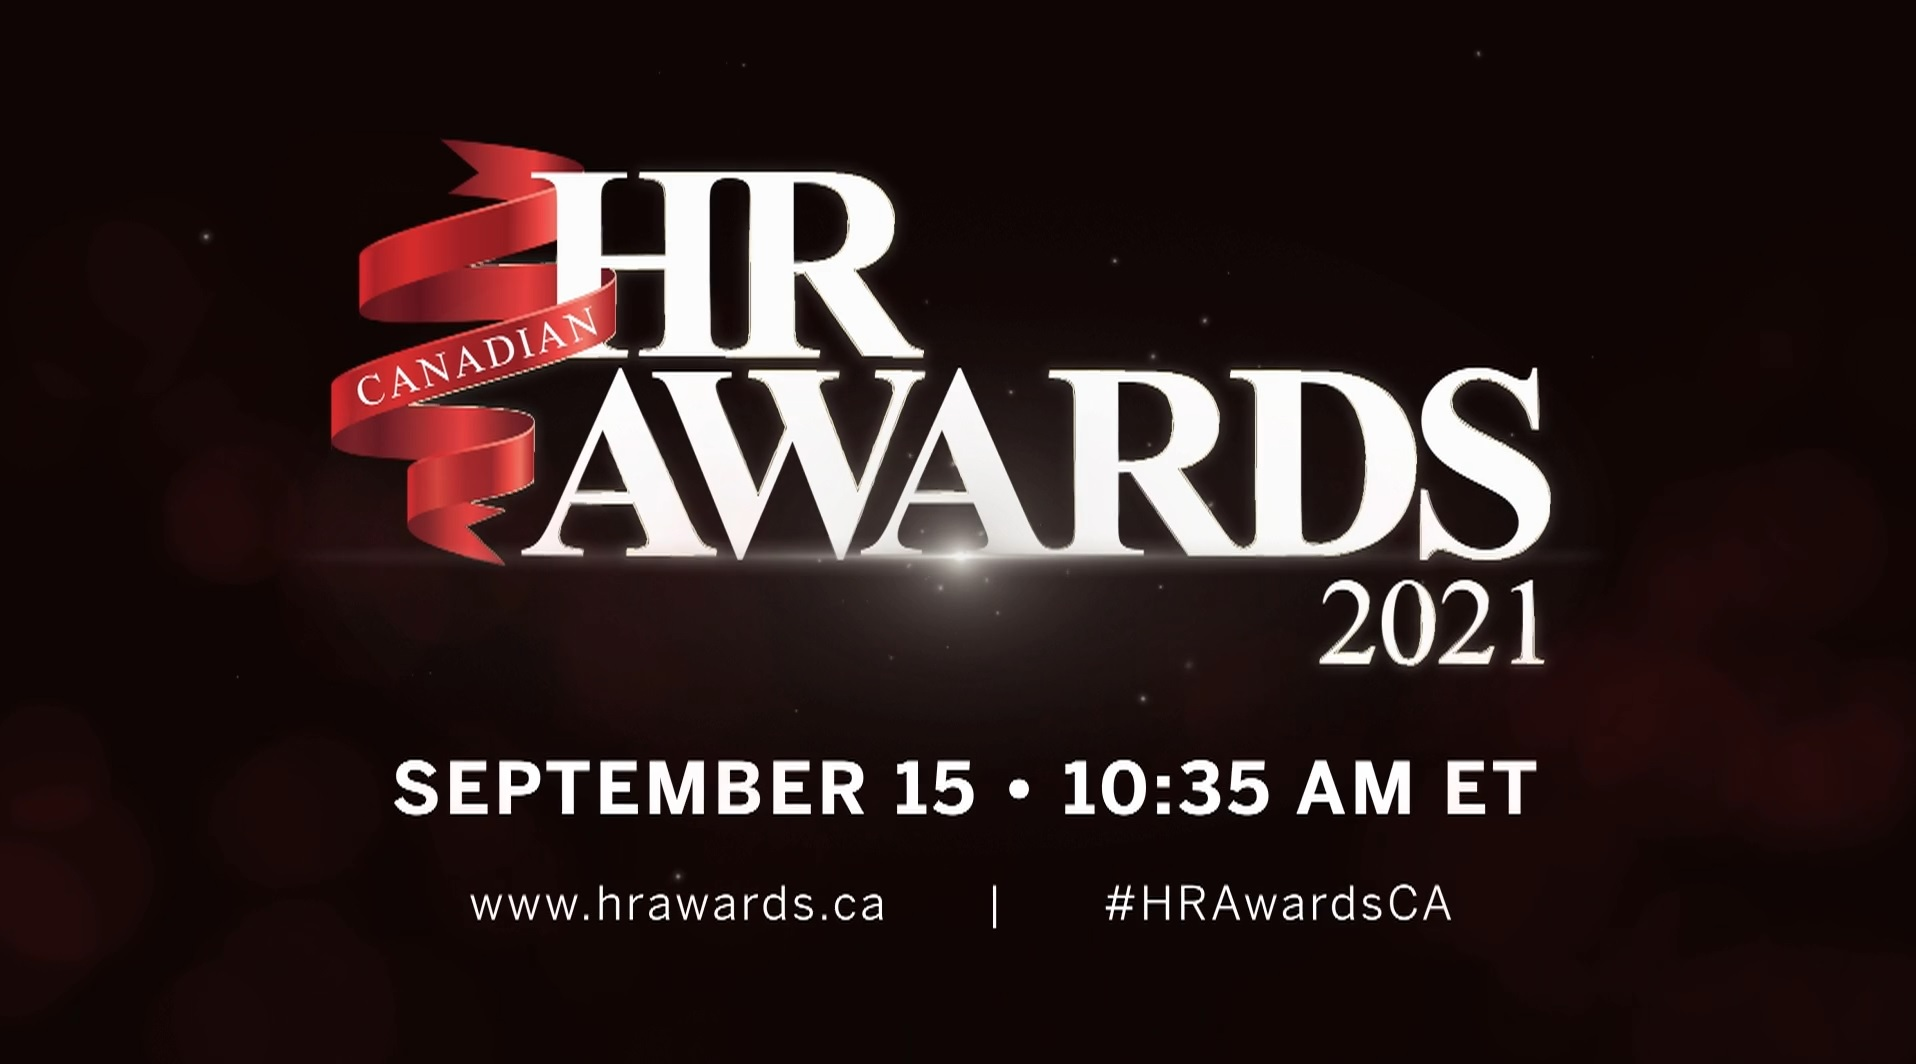 What to expect at the virtual Canadian HR Awards 2021